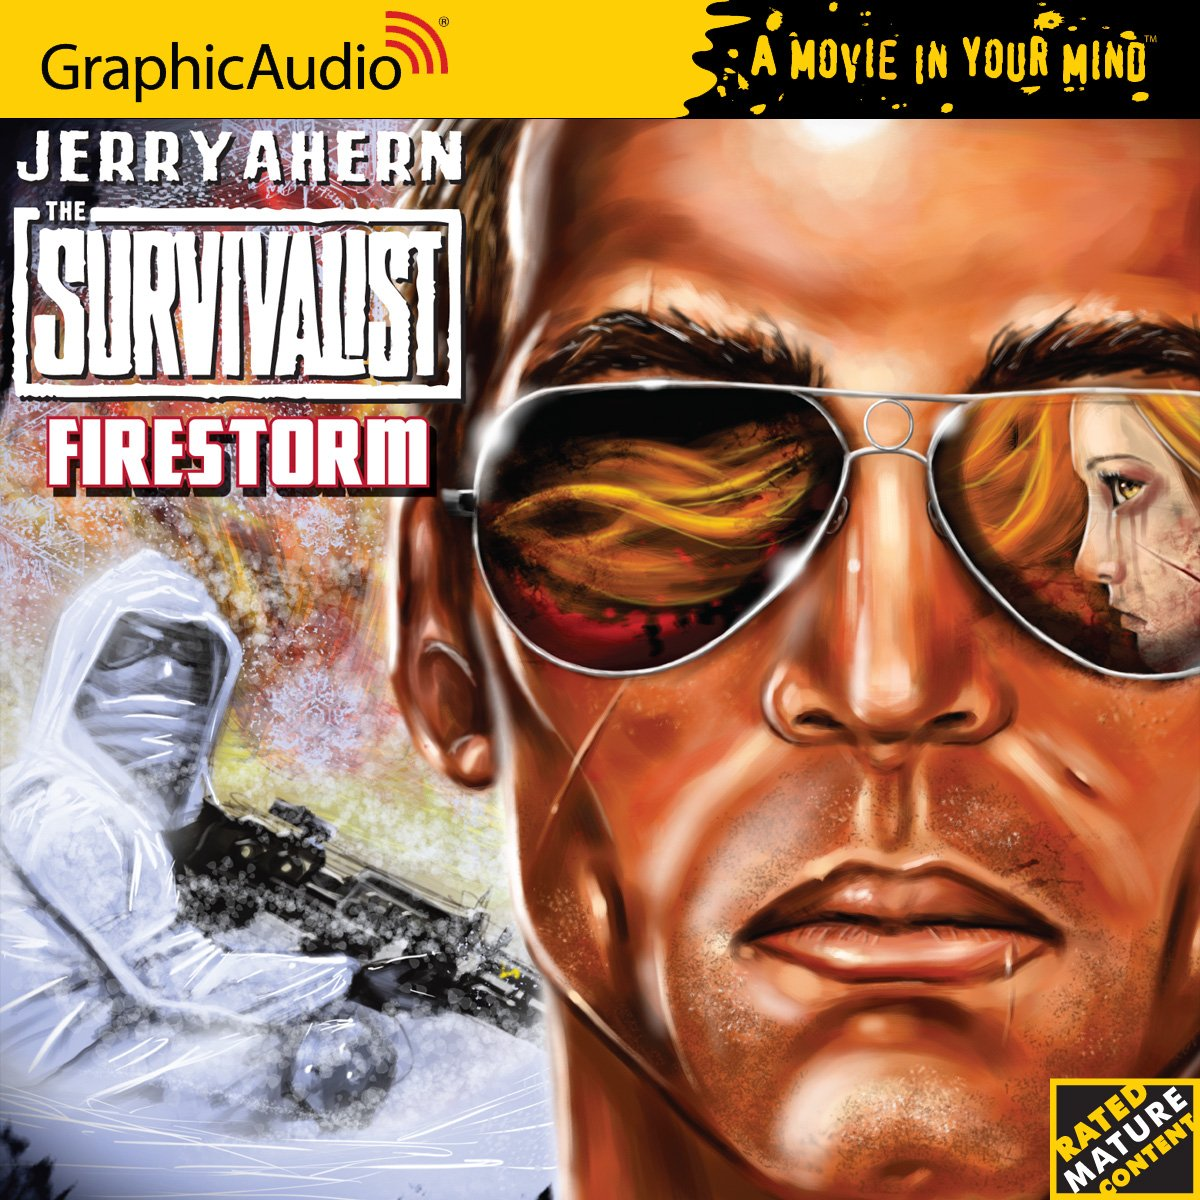 The Survivalist 20 - Firestorm Graphic Audio - Jerry Ahern